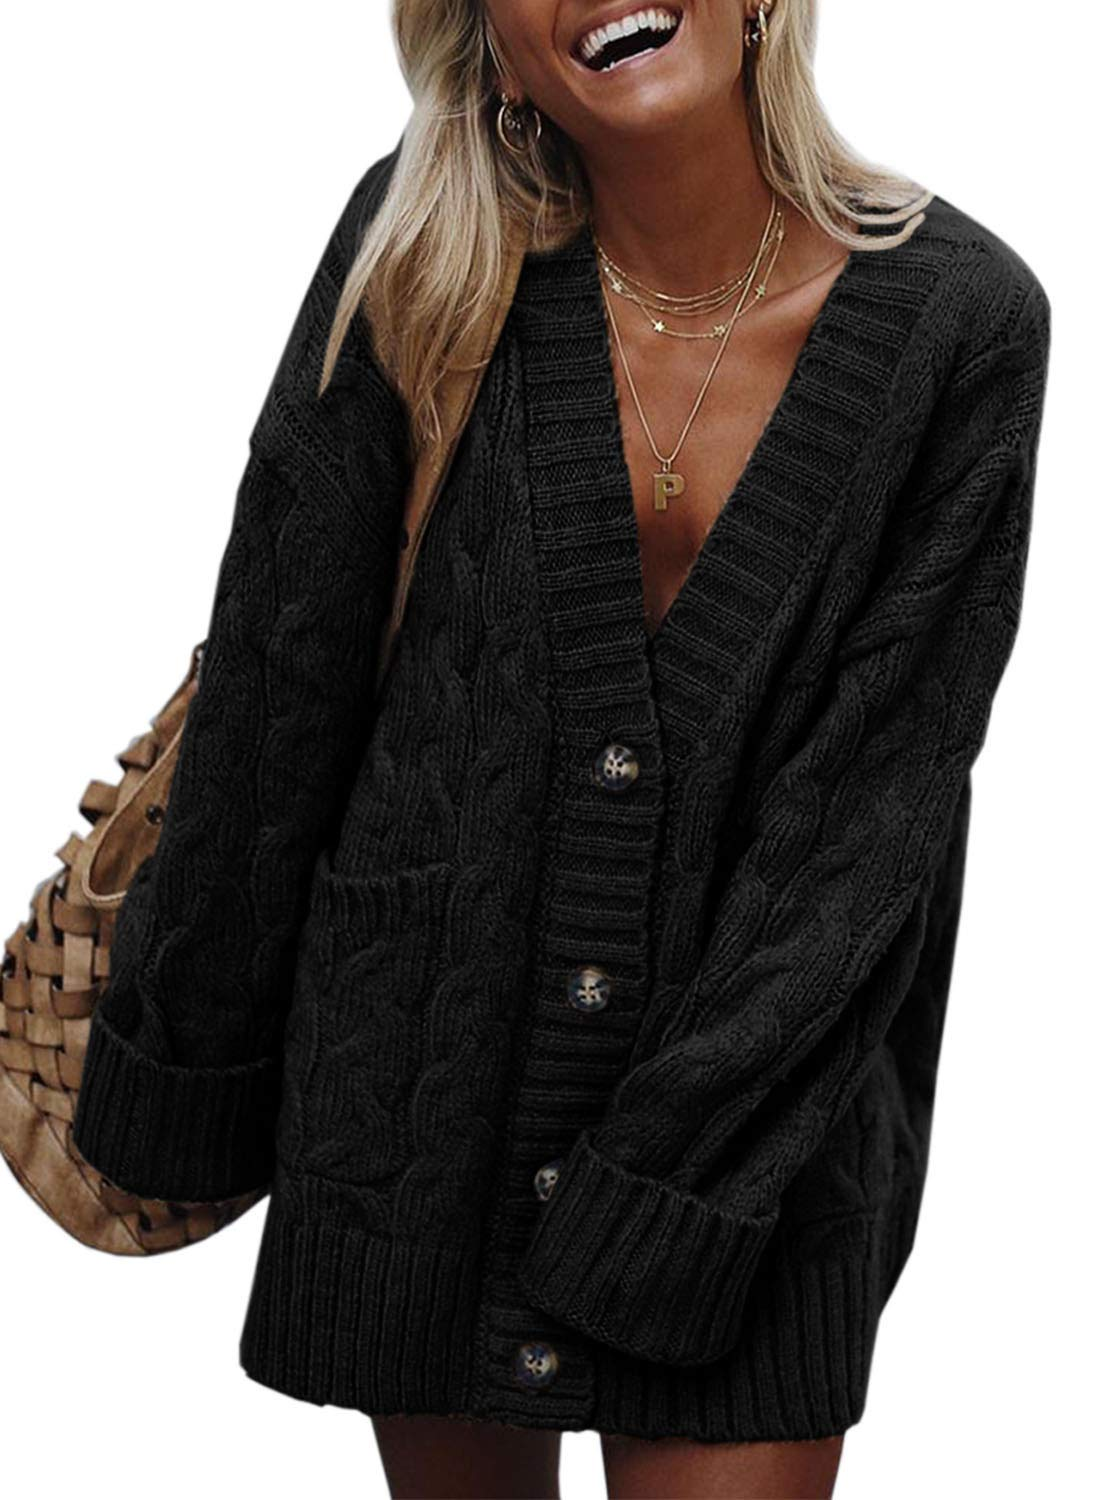 SIDEFEEL Women Open Front Pocketed Cardigan Sweater Button Down Sweater Coat Medium Black by SIDEFEEL